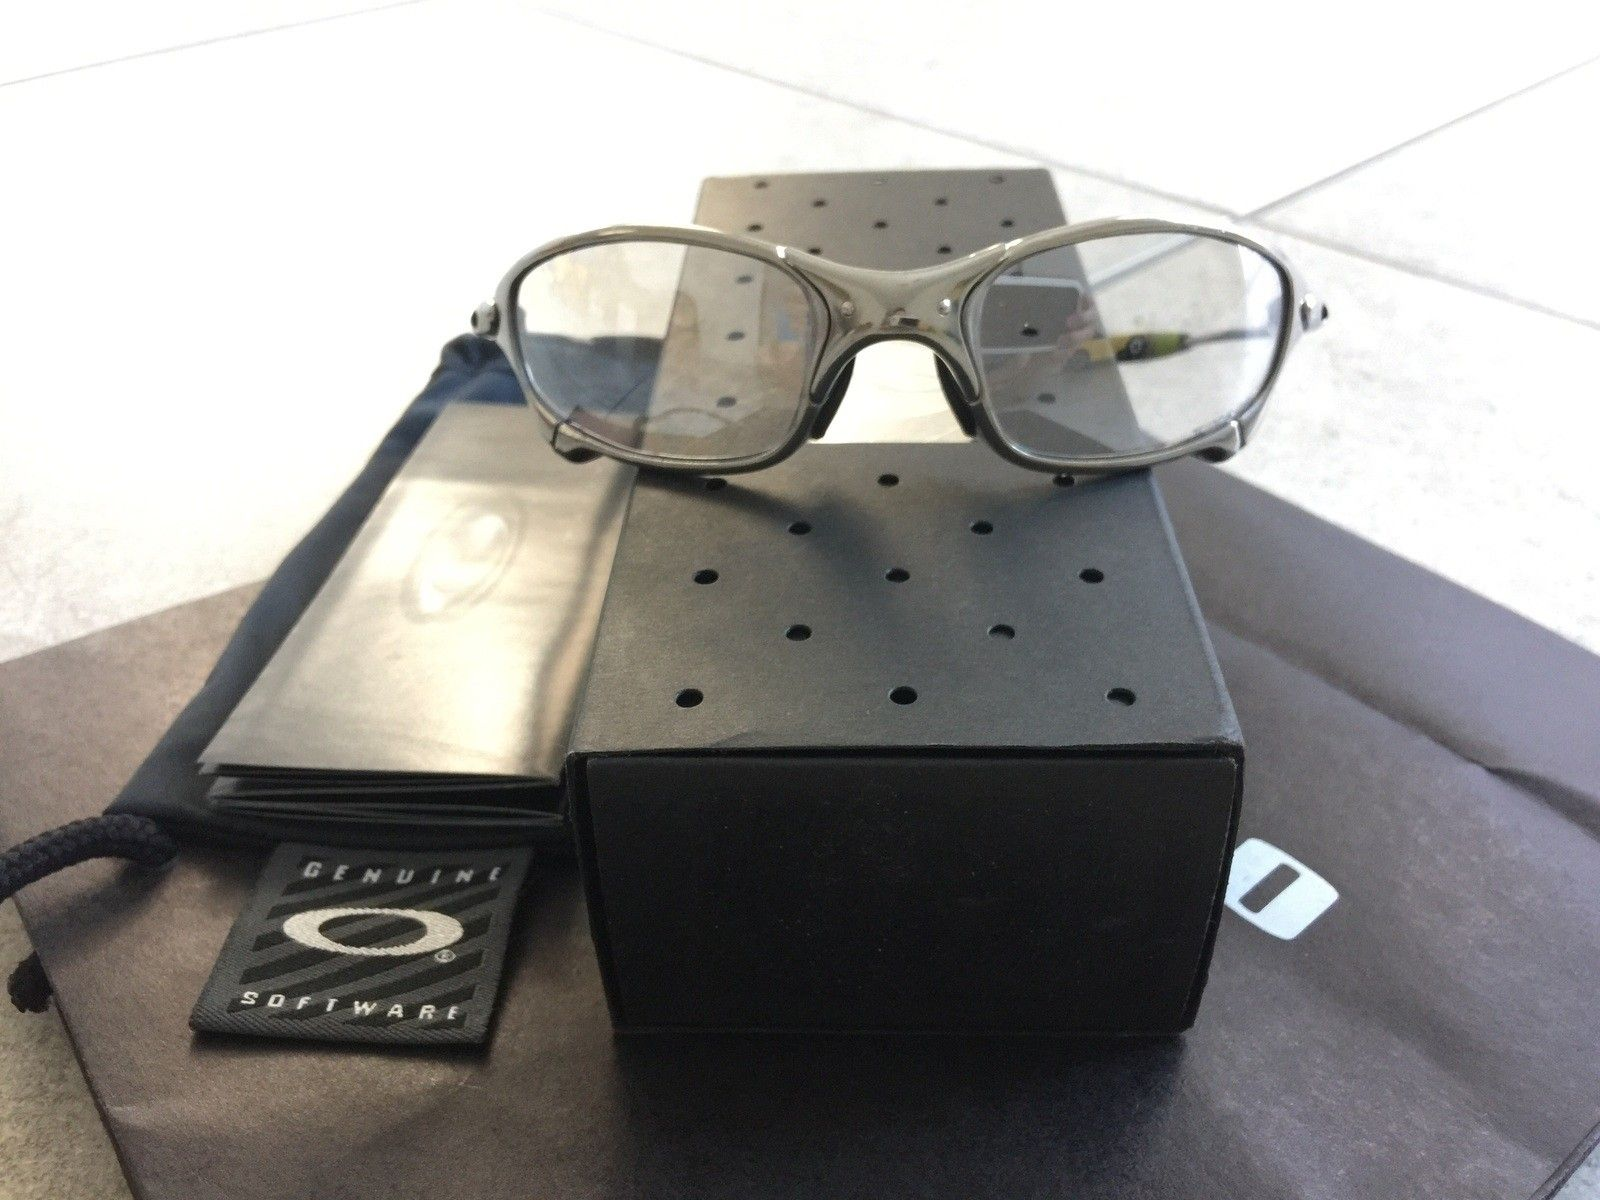 Difference of Penny polished and Titanium frame? - image.jpg